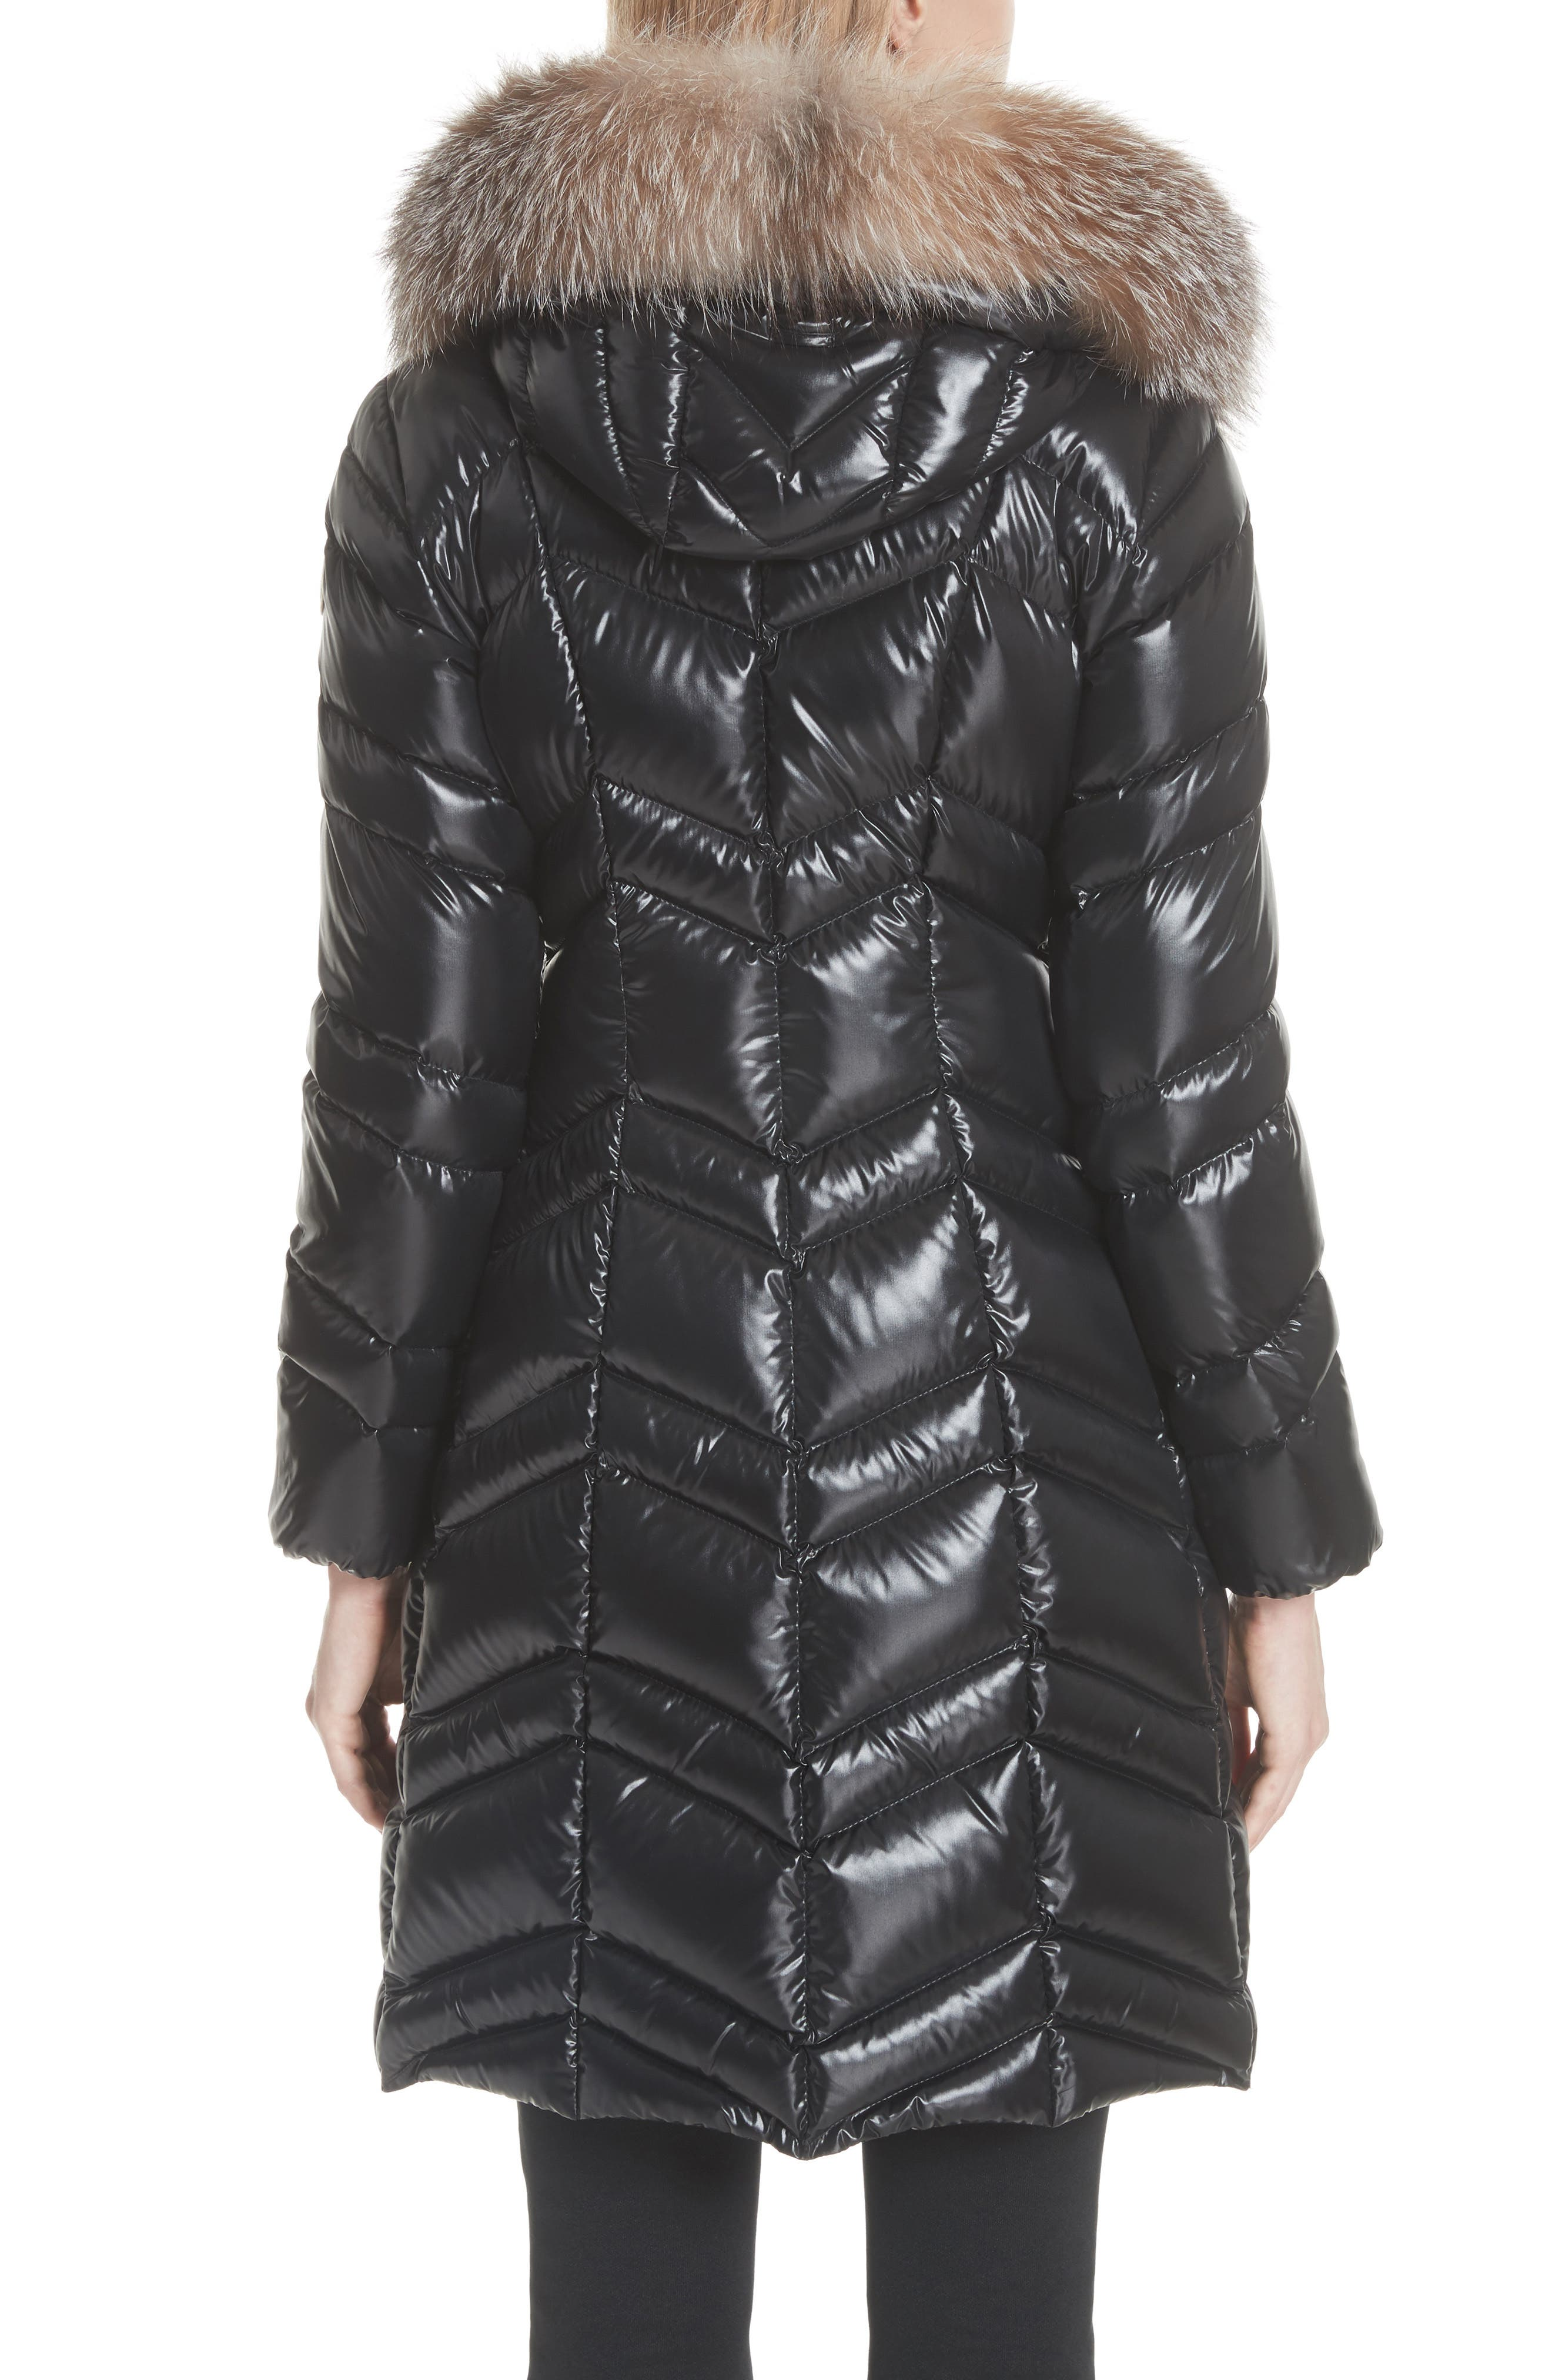 MONCLER, Fulmar Hooded Down Puffer Coat with Removable Genuine Fox Fur Trim, Alternate thumbnail 3, color, BLACK